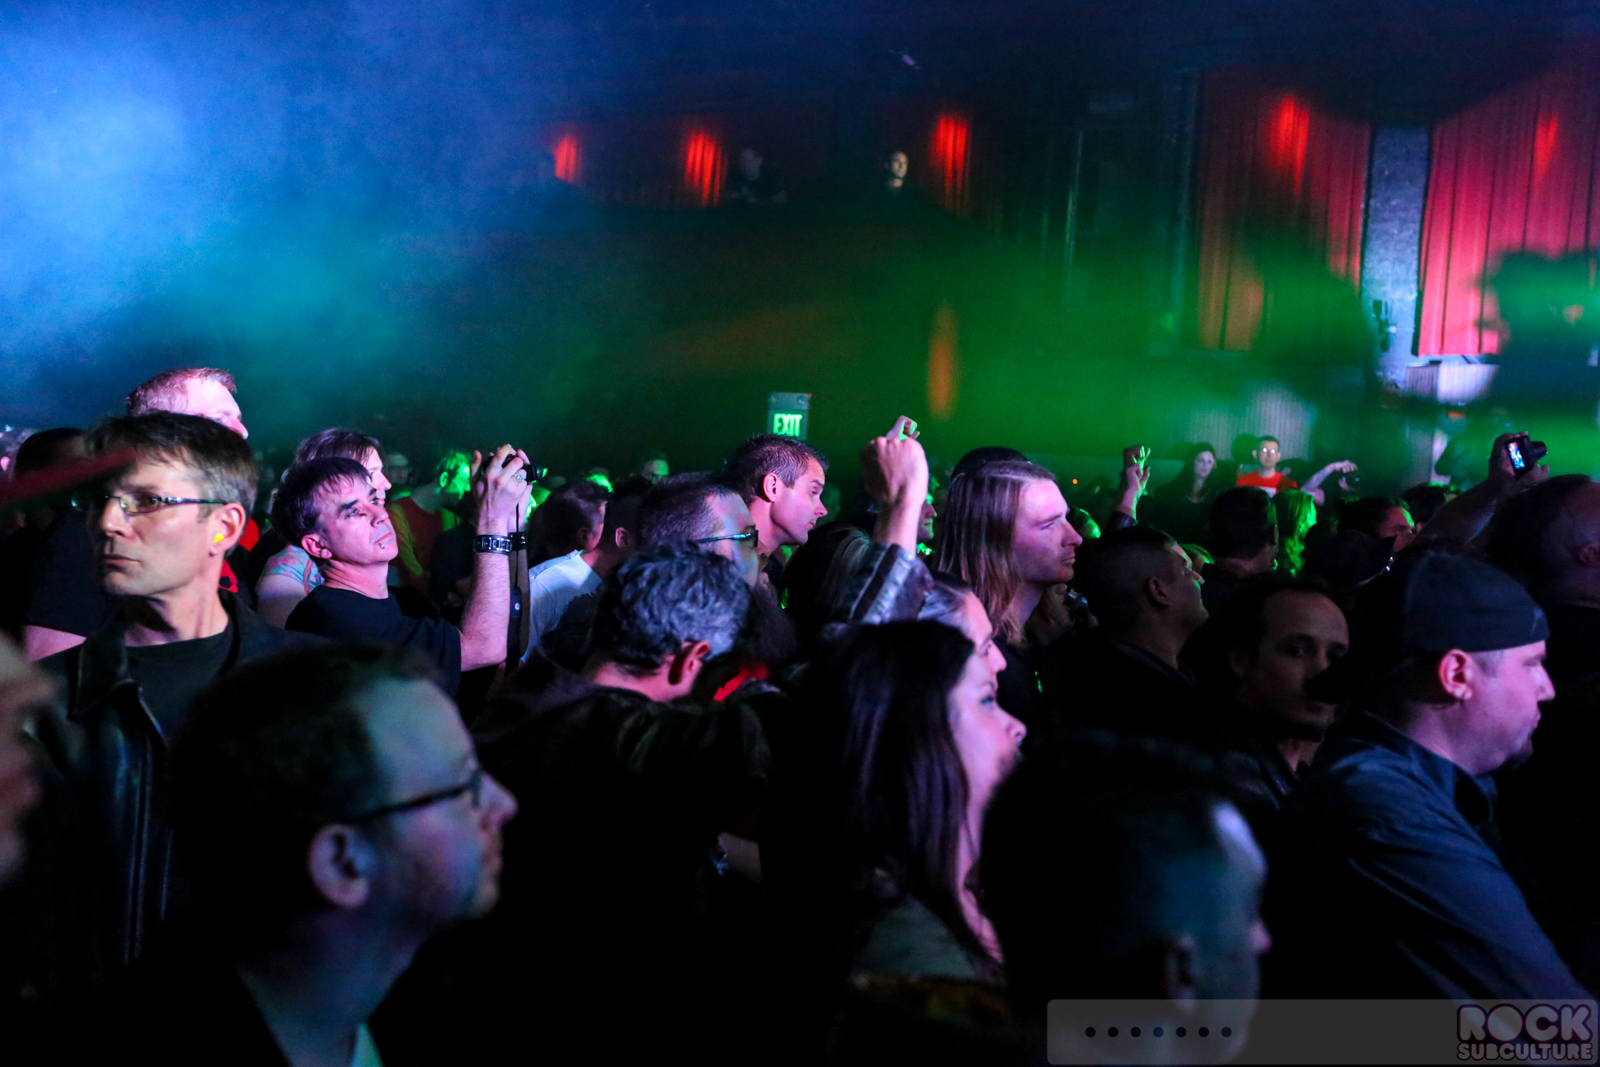 punk music concert review Get the latest music news plus concert recaps, reviews, photos, videos and more at jambase.